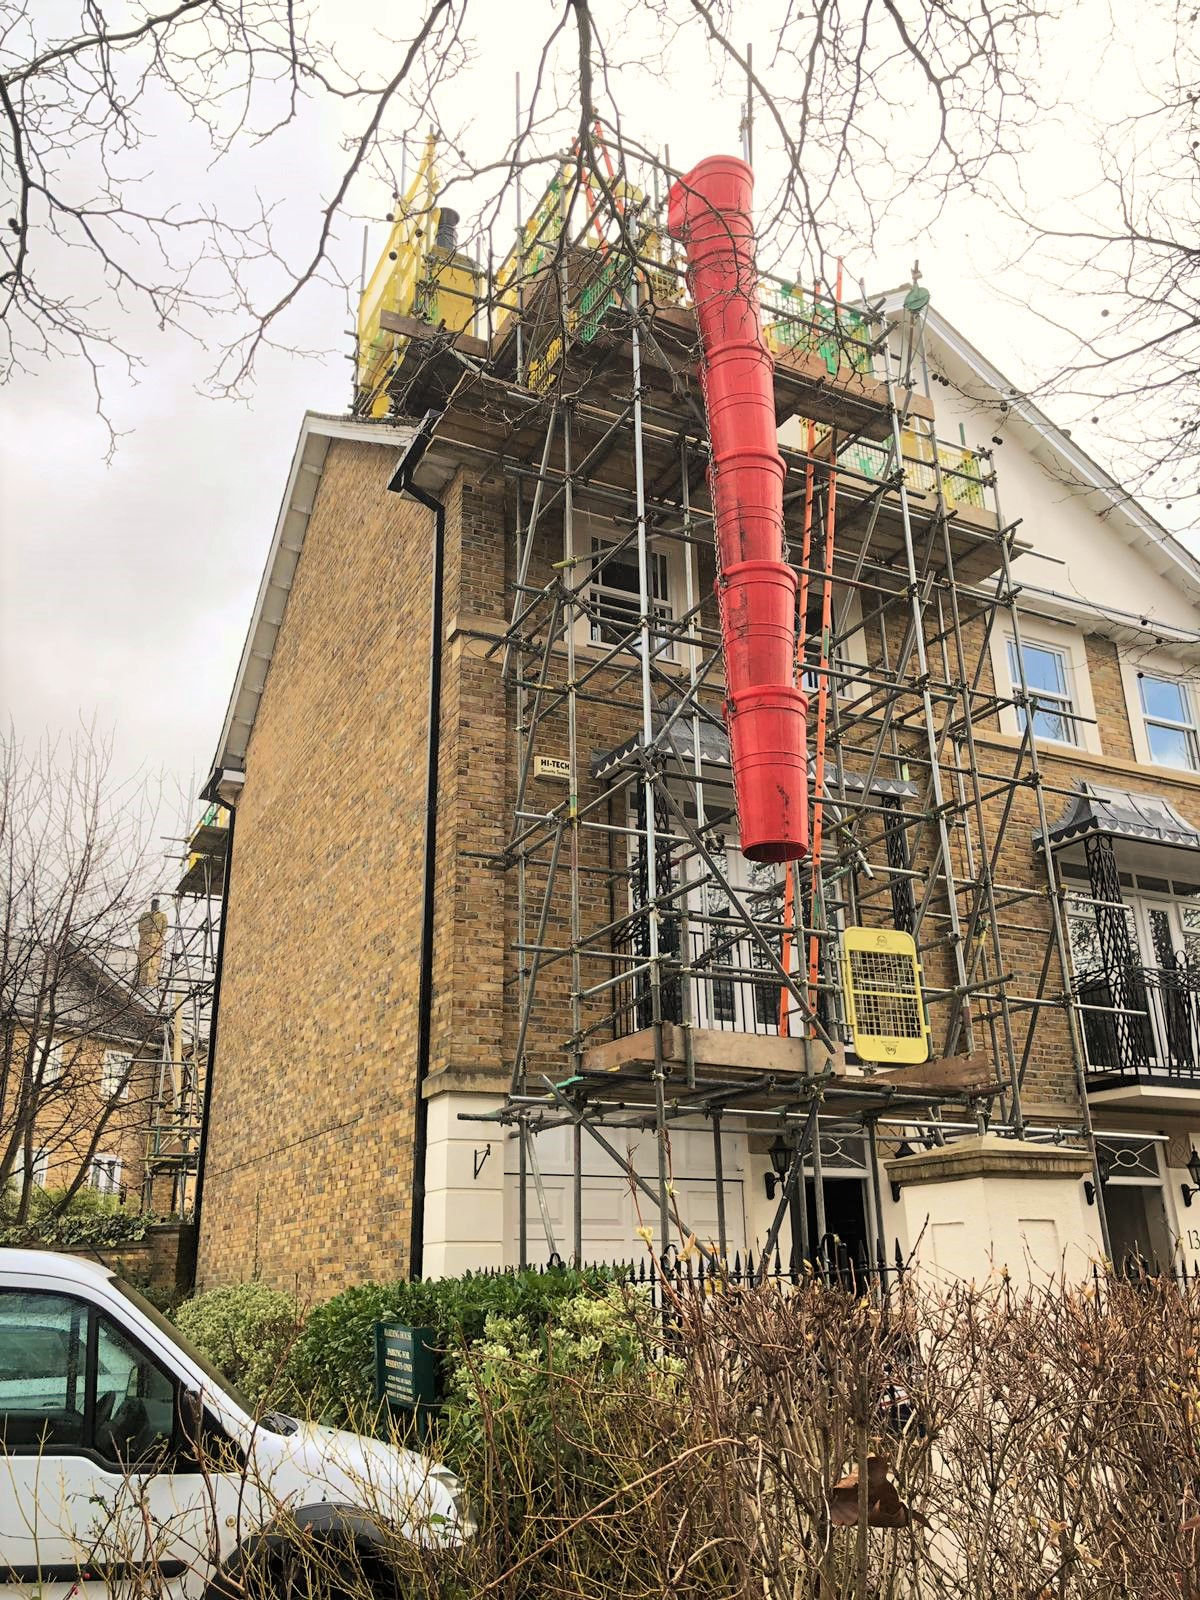 Royston-Scaffolding-projects-14.jpeg